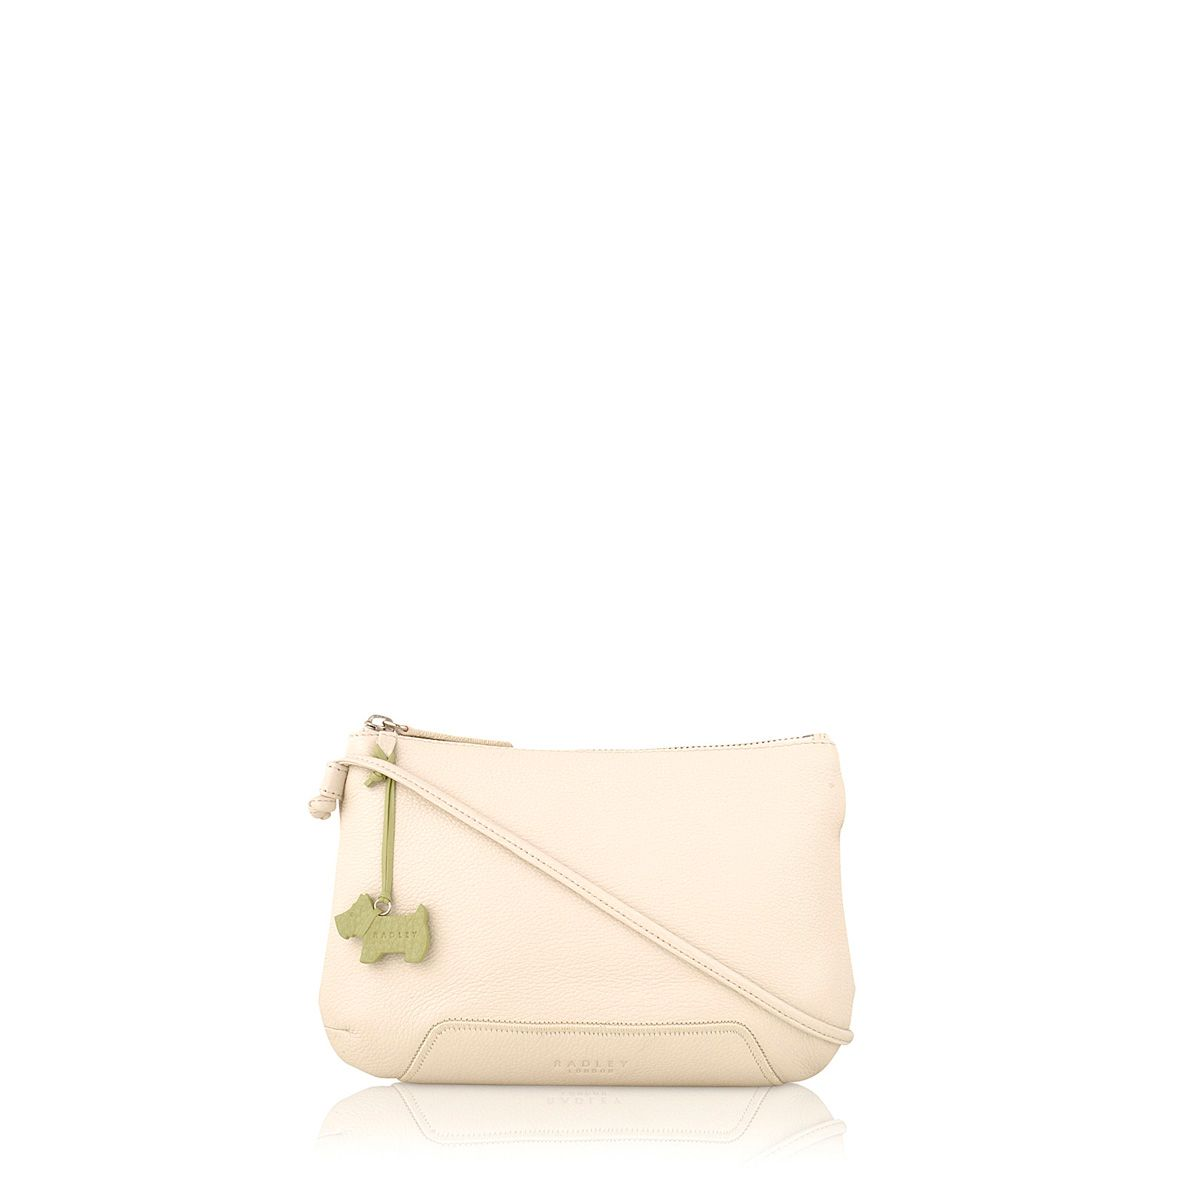 Dayton cream small leather cross body bag